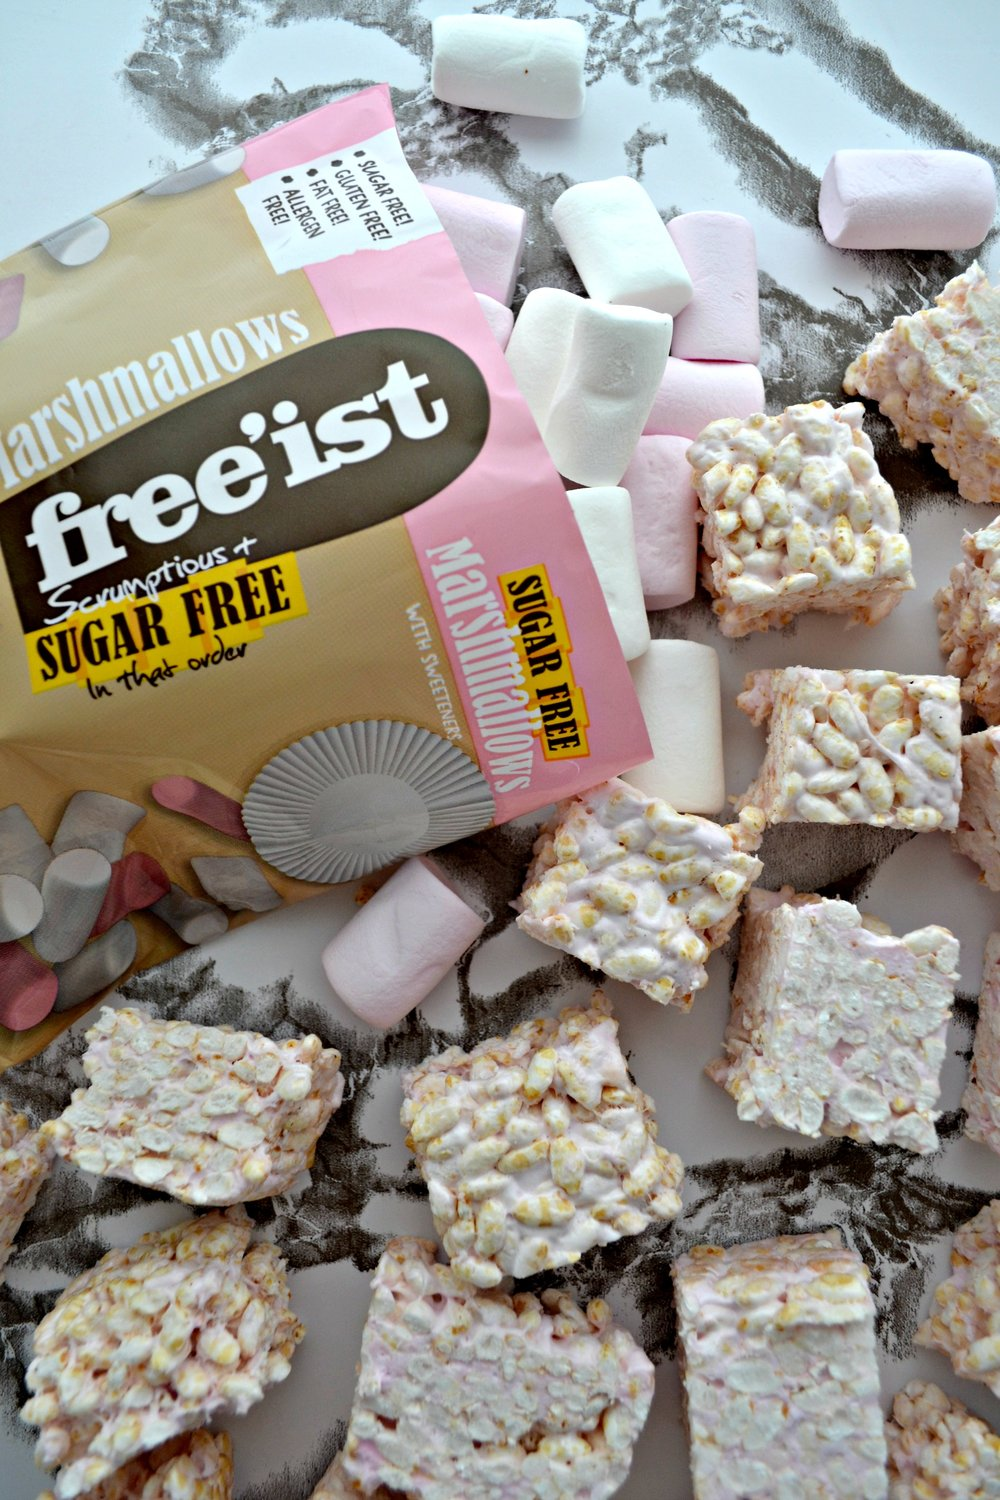 Rice Crispy Squares with Free'ist | The Flourishing Pantry